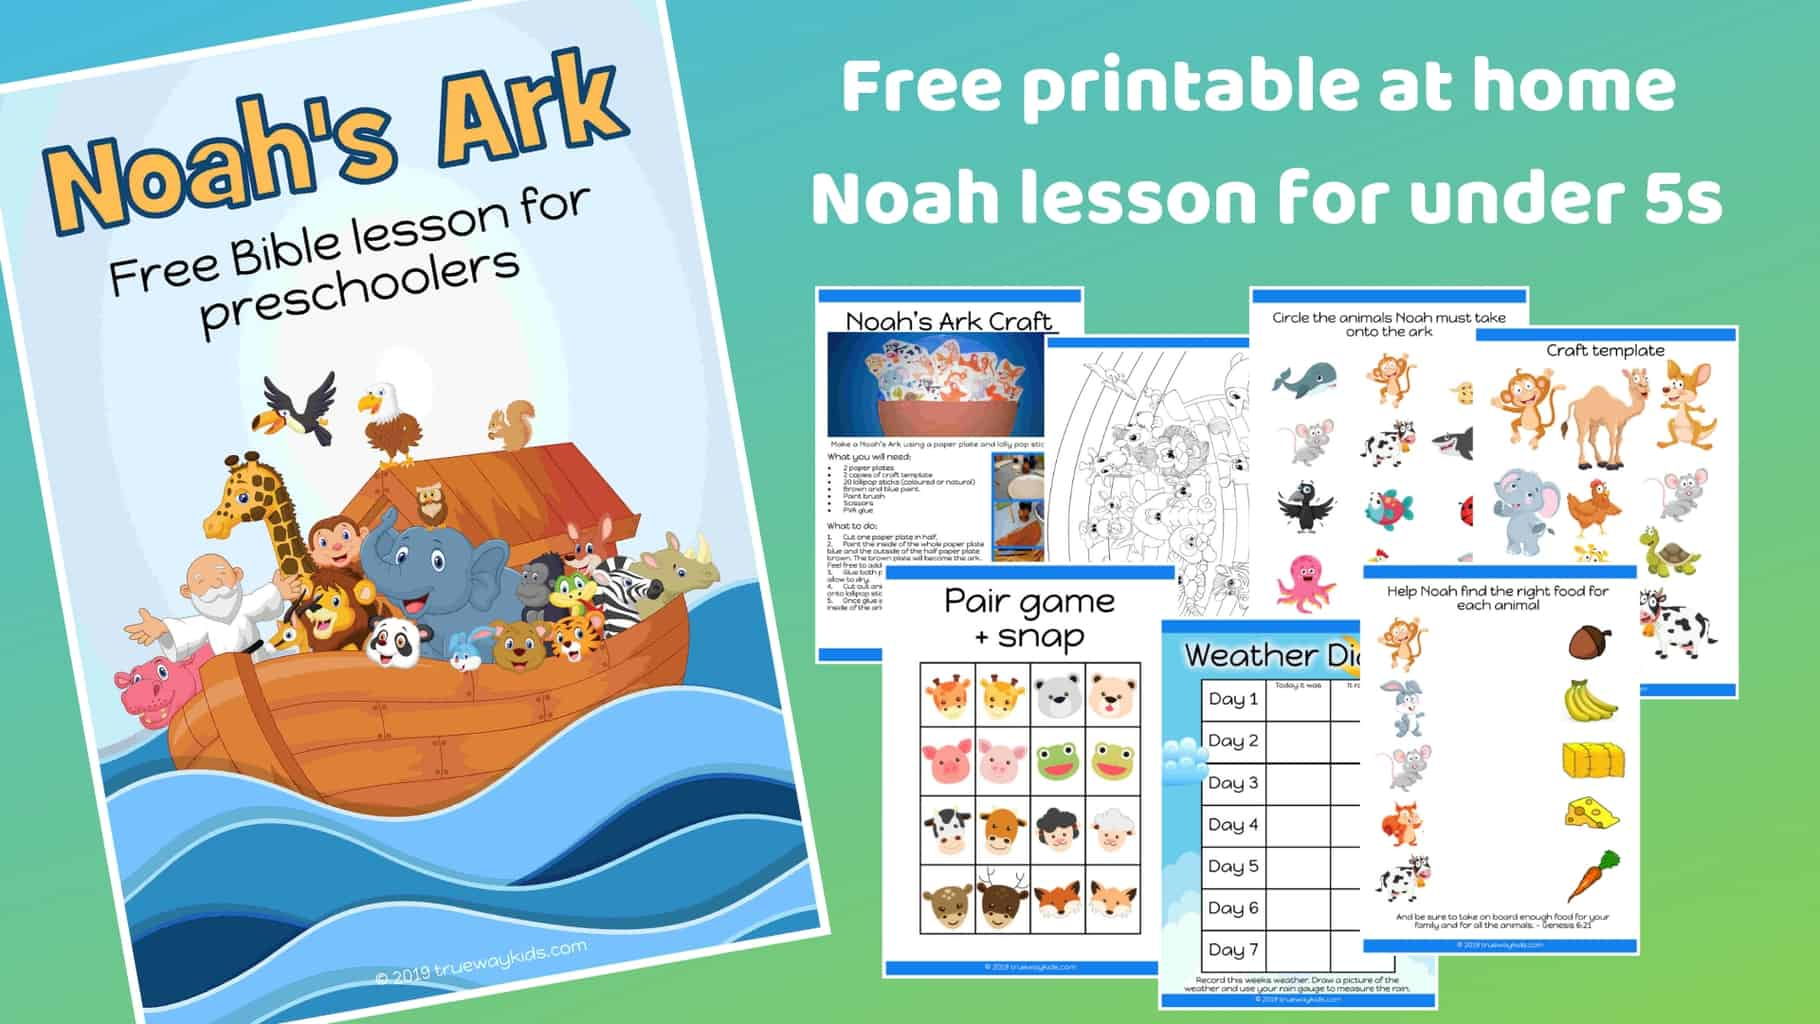 picture regarding Noah's Ark Printable named Noahs Ark - No cost printable Bible lesson for preschoolers